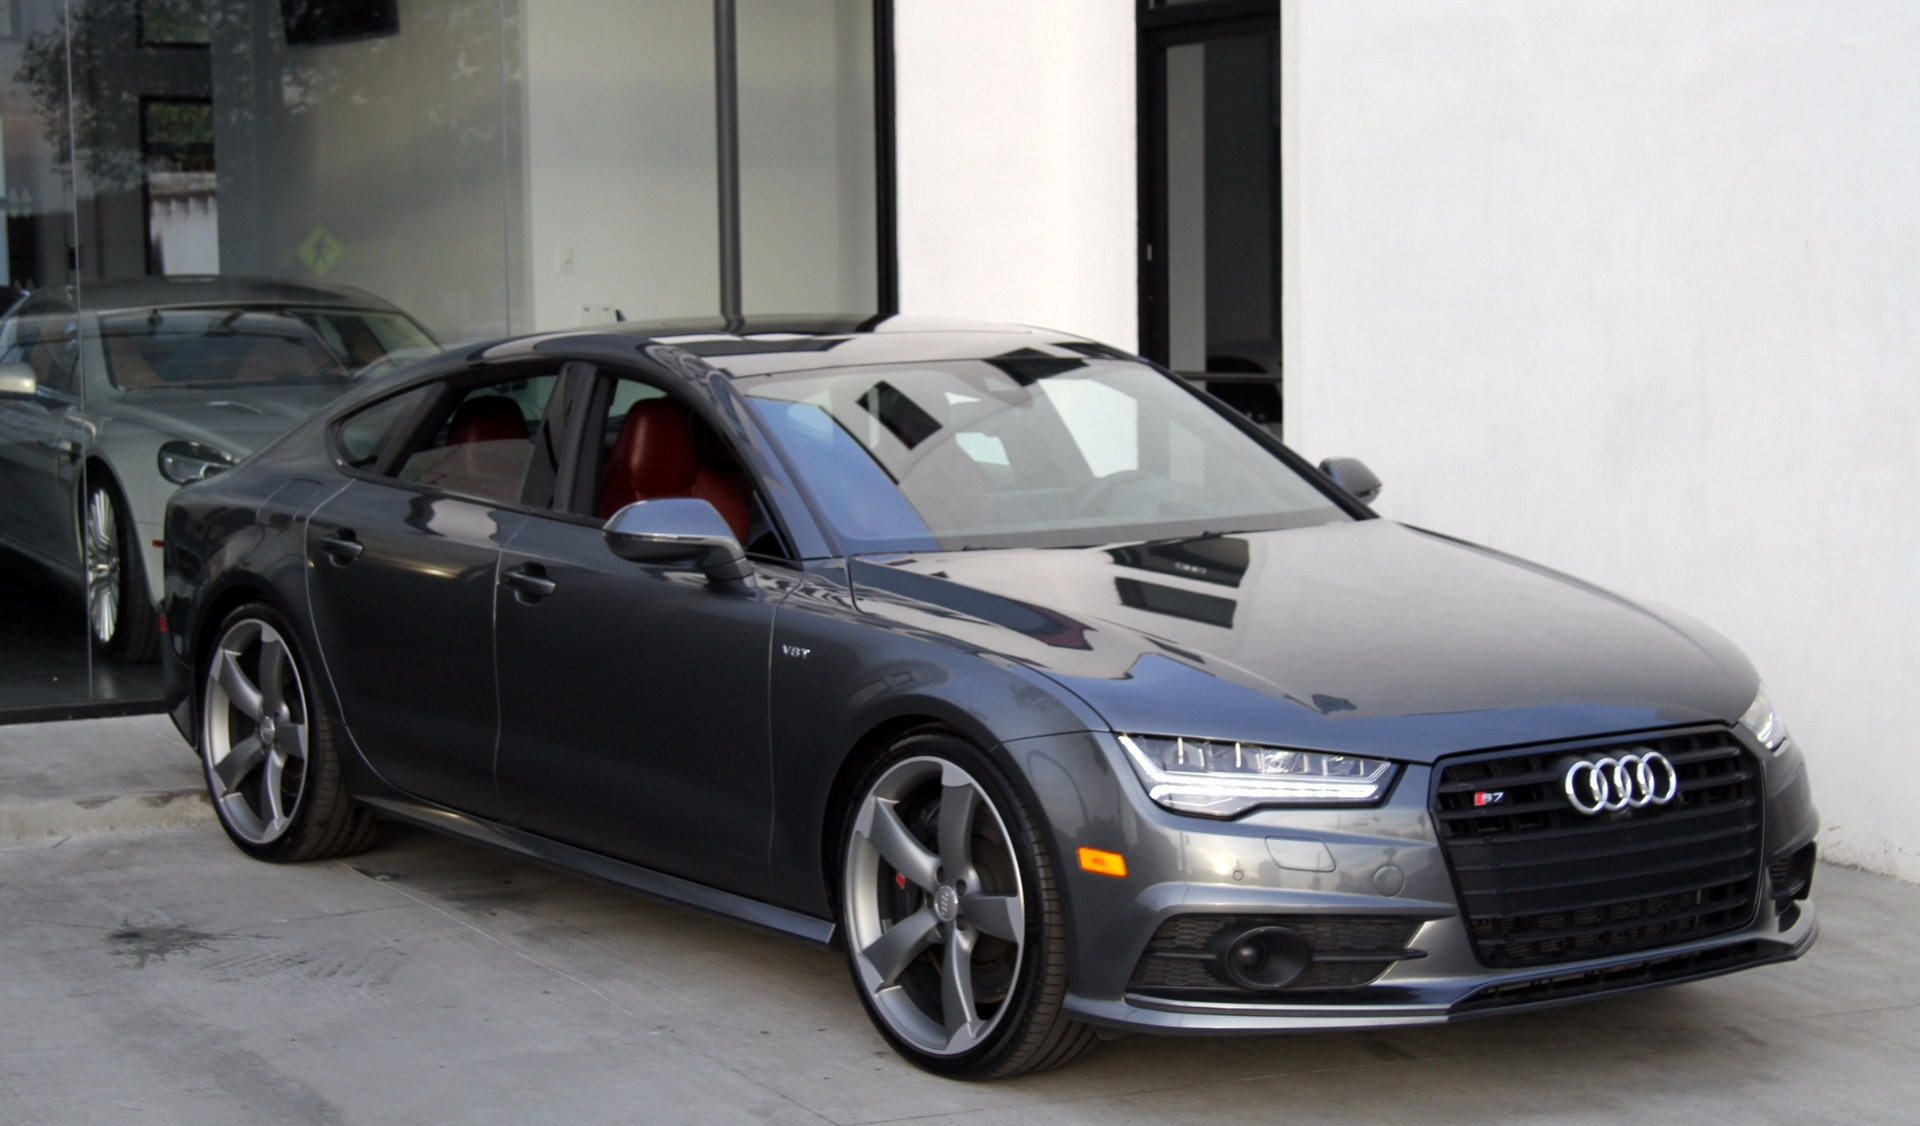 Audi Dealership Near Me >> 2016 Audi S7 4.0T quattro PRESTIGE Stock # 6040 for sale near Redondo Beach, CA | CA Audi Dealer